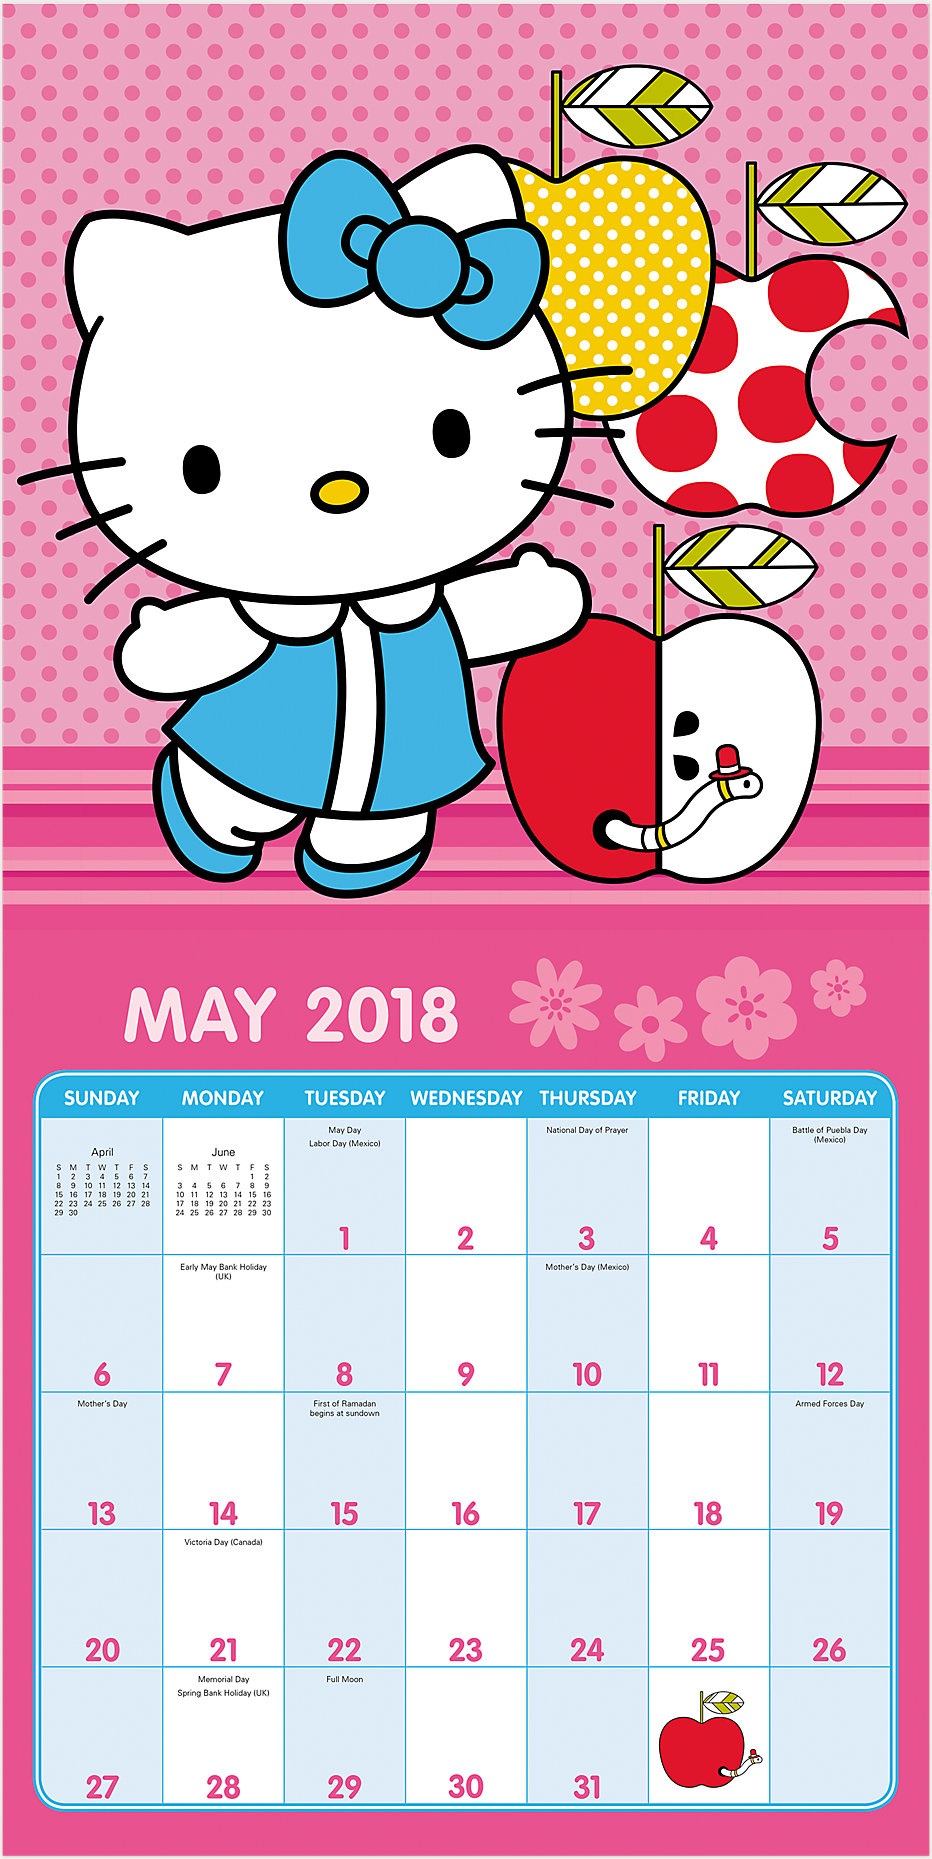 Most Inspiring Wallpaper Hello Kitty Calendar - DDD6582818_4?$mead_ProductDetailZoom$  Pic_183356.com/is/image/Daytimer/DDD6582818_4?$mead_ProductDetailZoom$